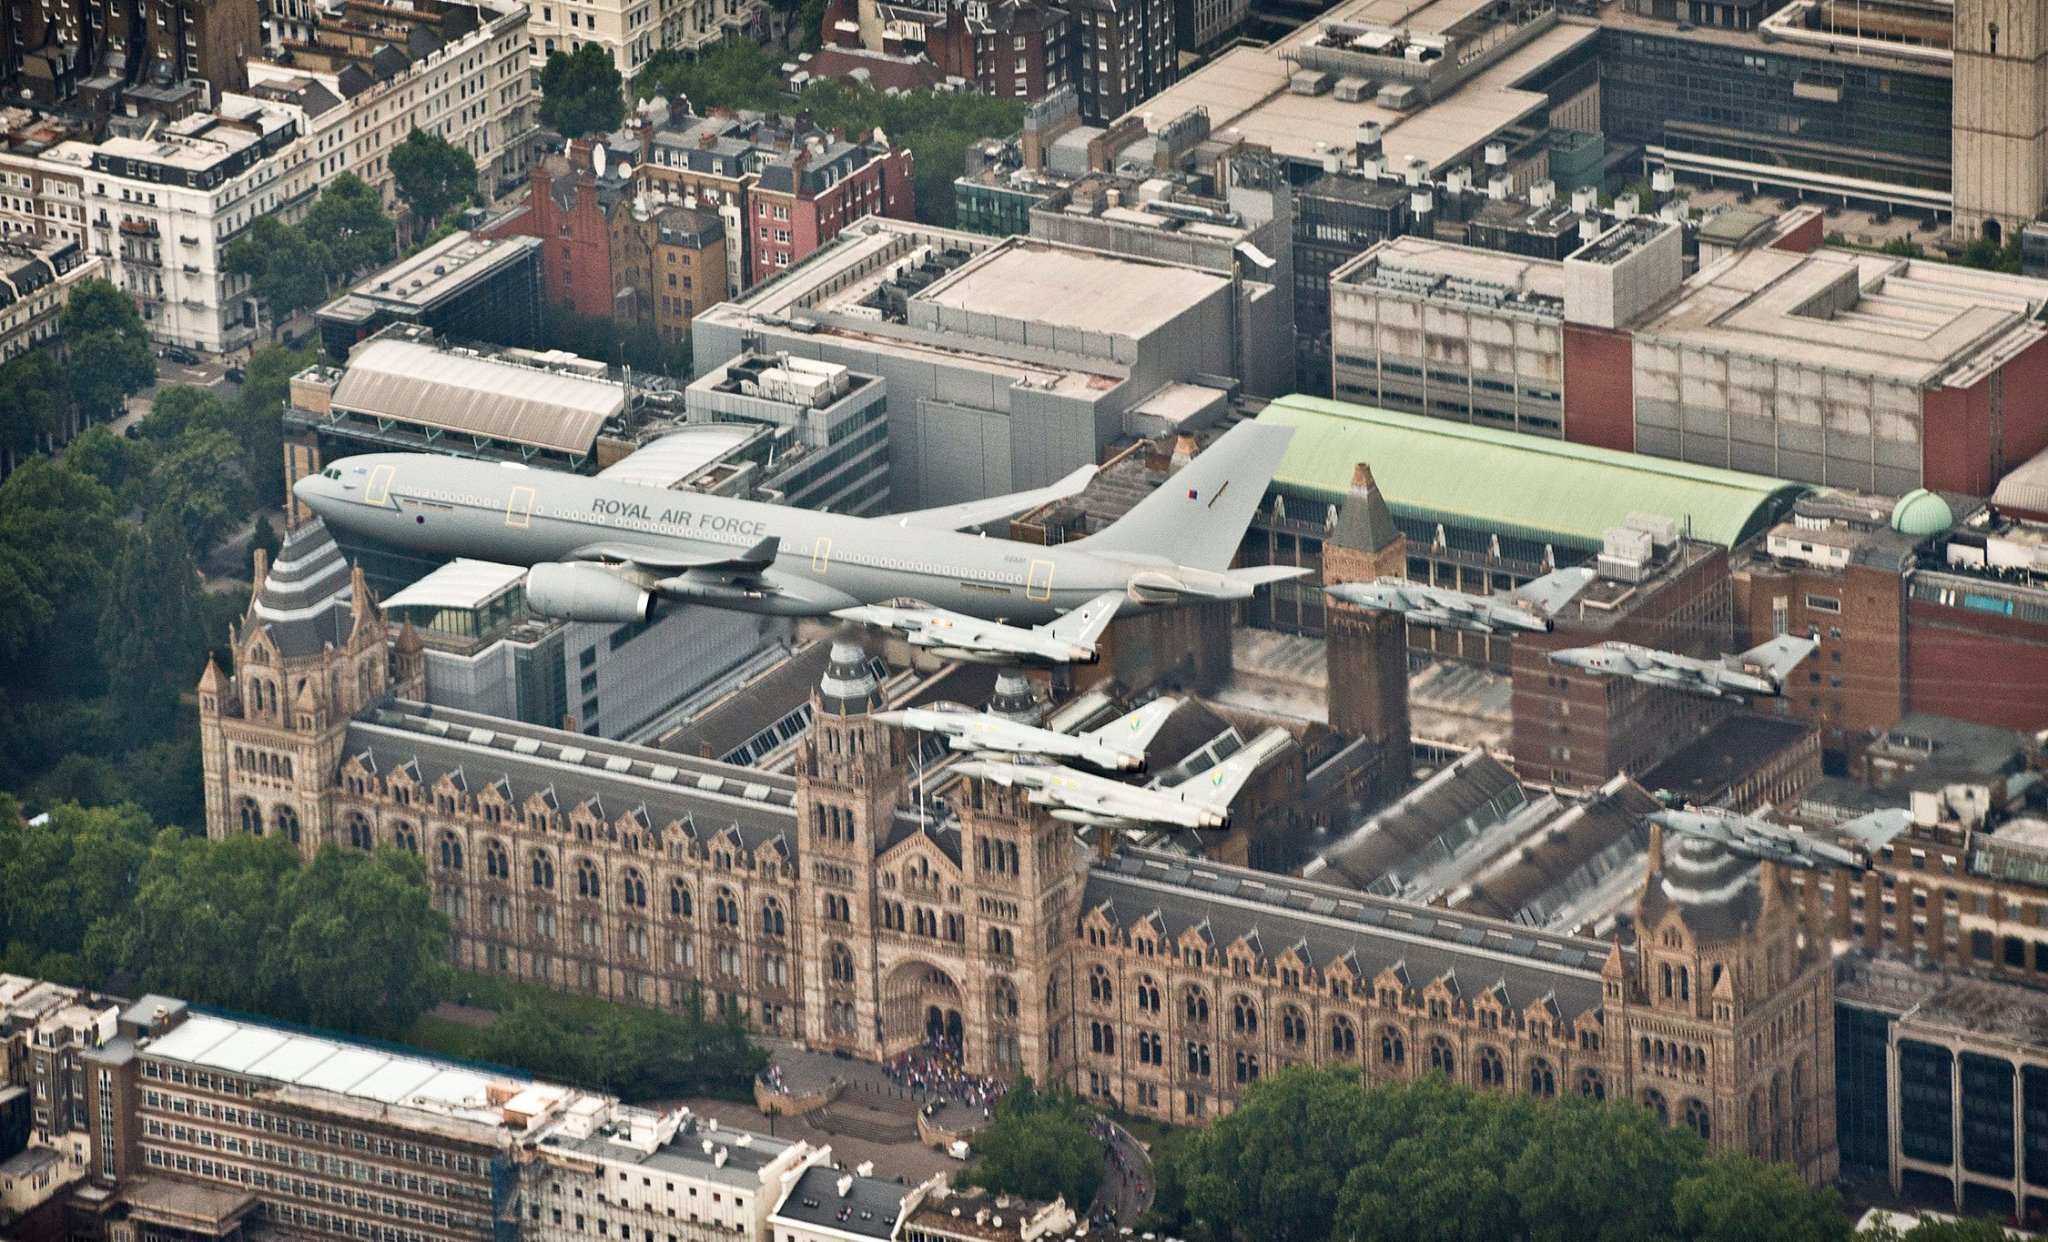 Royal Air Force - Ministry of Defence ©Crown Copyright